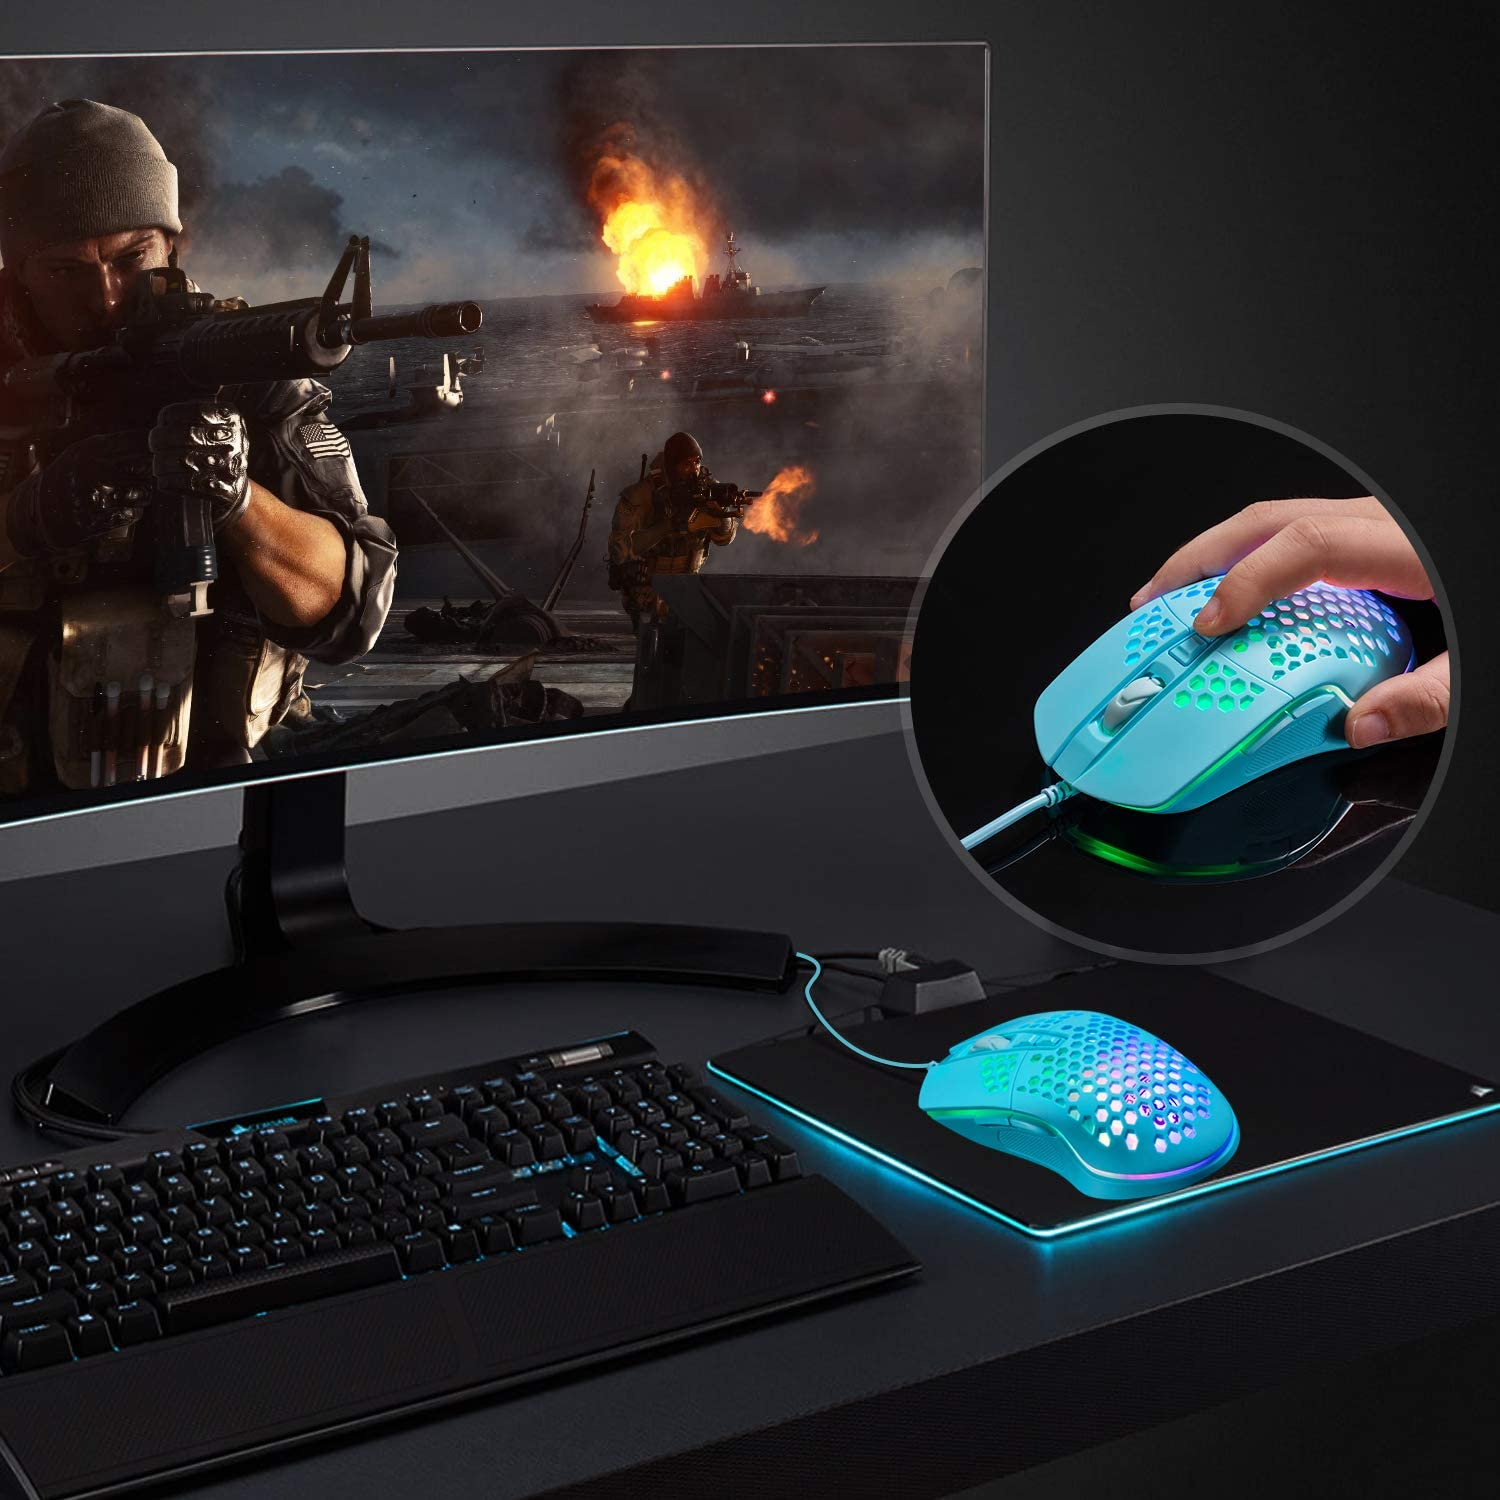 Lightweight Gaming Mouse, Wired USB PC Gaming Mice with Ultralight Honeycomb Shell, RGB Chroma LED Light, 6400 DPI Adjustable, Pixart 3325, Programmable 7 Buttons Mouse for Windows 7/8/10/XP: Computers & Accessories